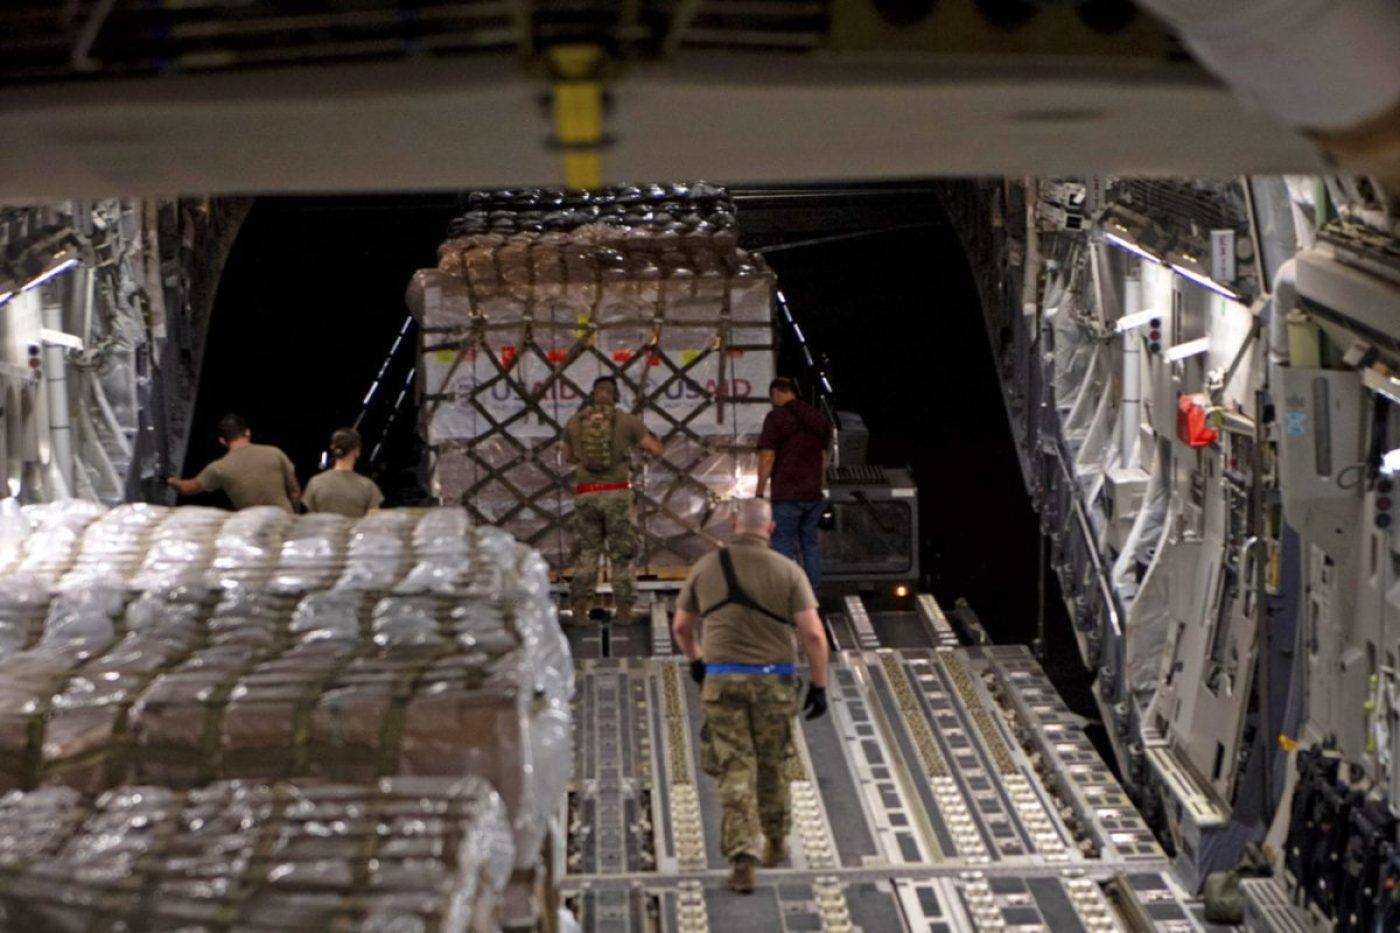 Airmen assigned to the 60th Aerial Port Squadron secure pallets loaded with U.S.-made ventilators onto the cargo floor of a C-17 Globemaster III at Travis Air Force Base, Aug. 27, 2020. The United States provided brand-new, high-quality ventilators to the government of Indonesia to fight COVID-19. (U.S. Air Force photo by SR. Airman Jonathan Carnell)